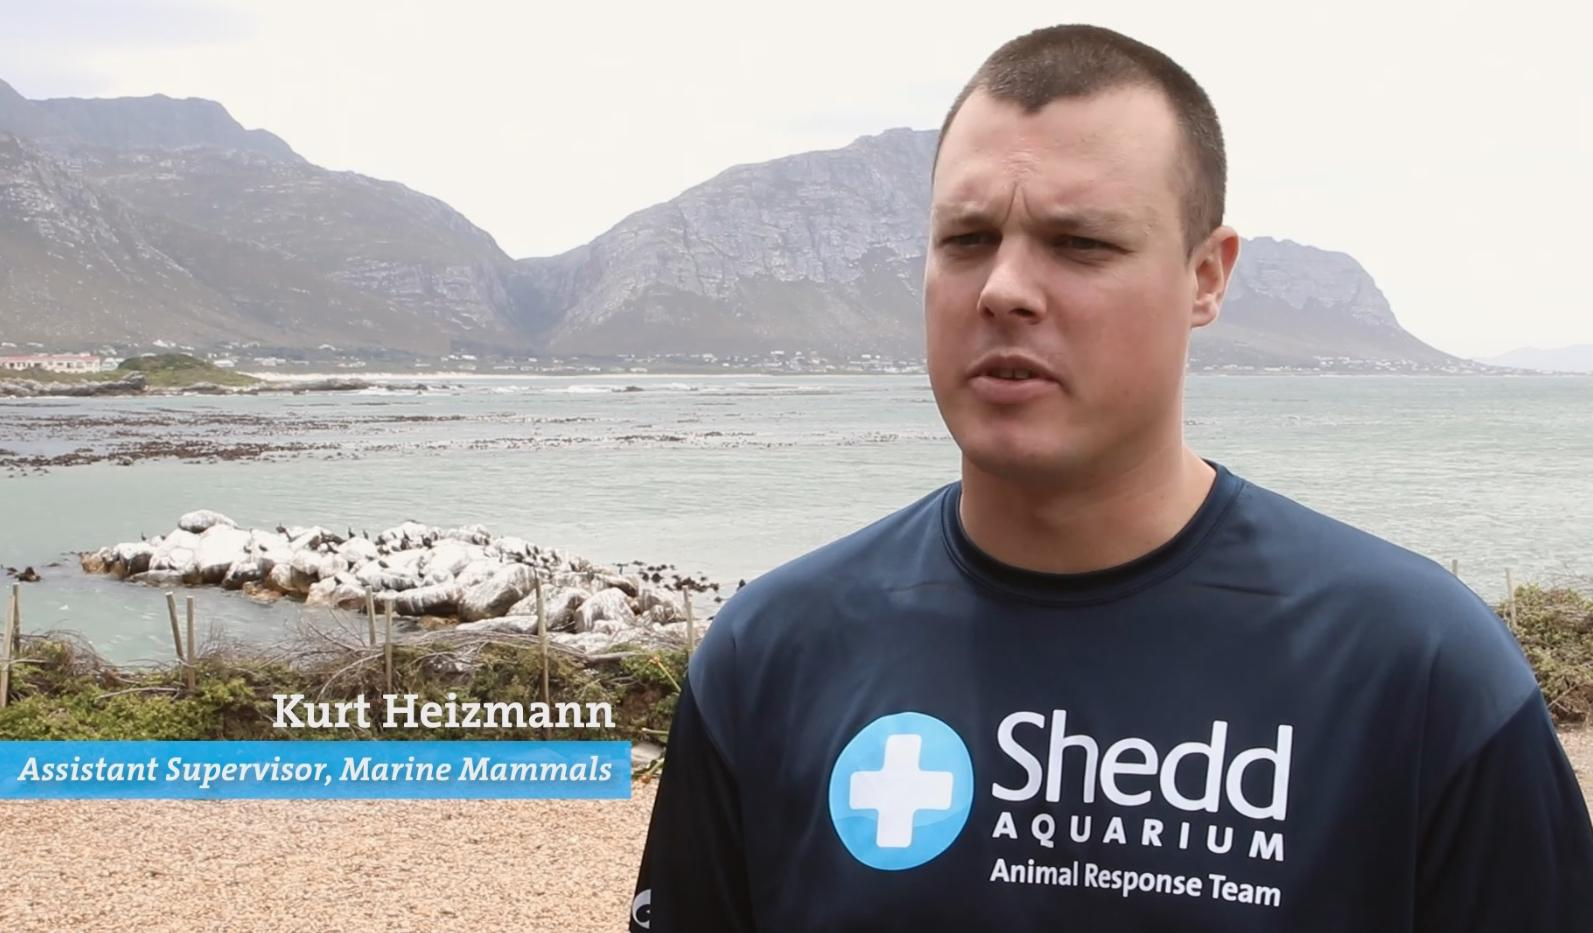 Kurt Heizmann of Shedd Aquarium's Animal Response Team (Shedd Aquarium)